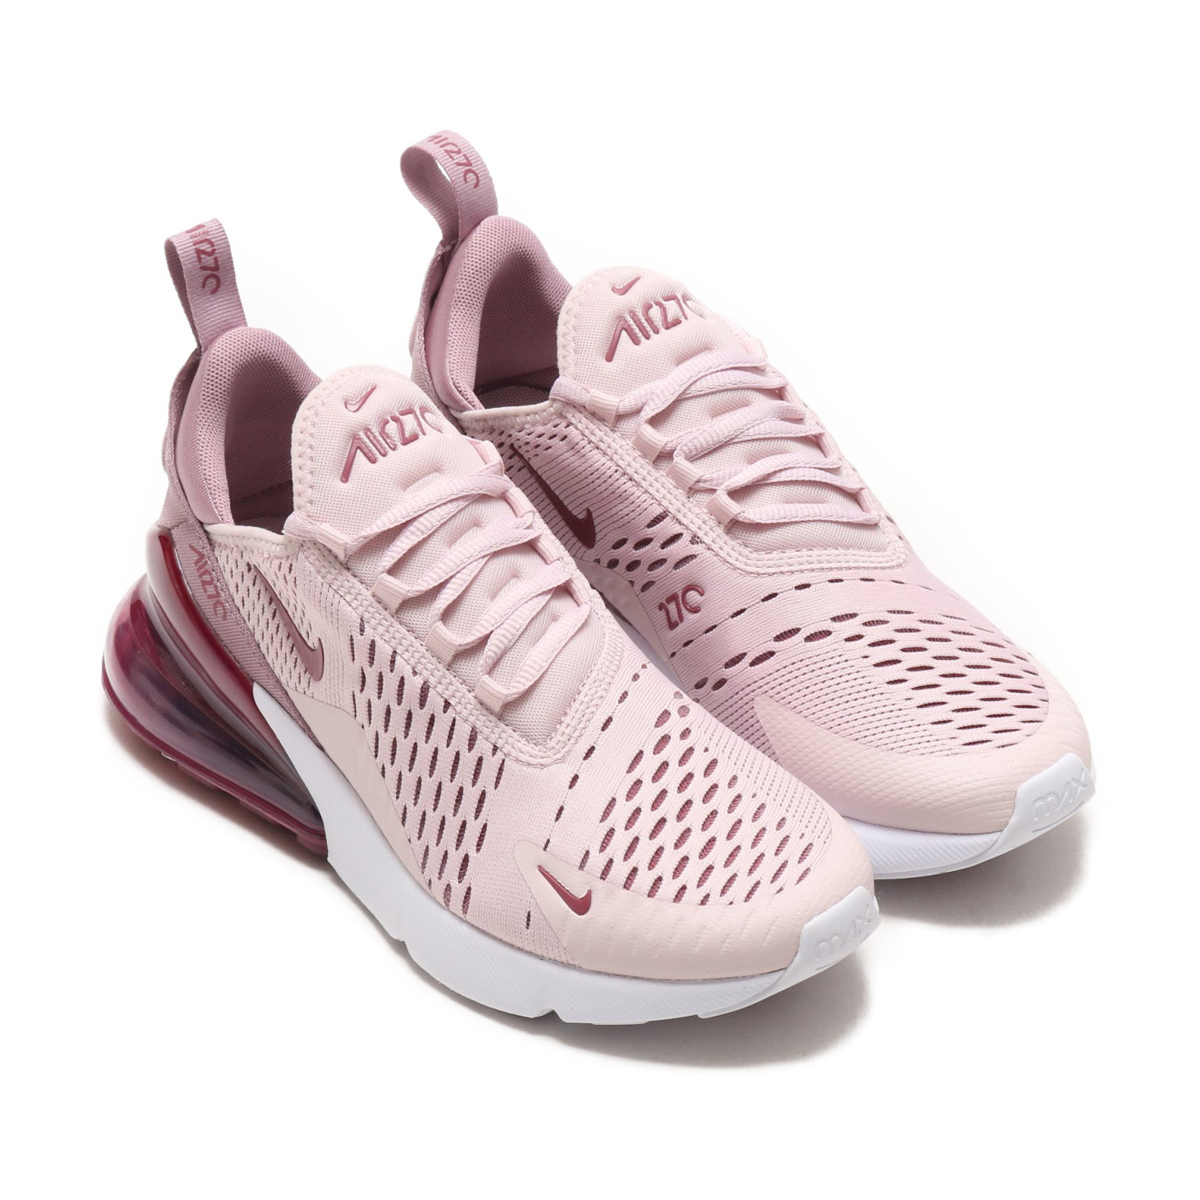 7f08e6d4d4639 NIKE W AIR MAX 270 (Nike women Air Max 270) (BARELY ROSE VINTAGE  WINE-ELEMENTAL ROSE) 18SU-S